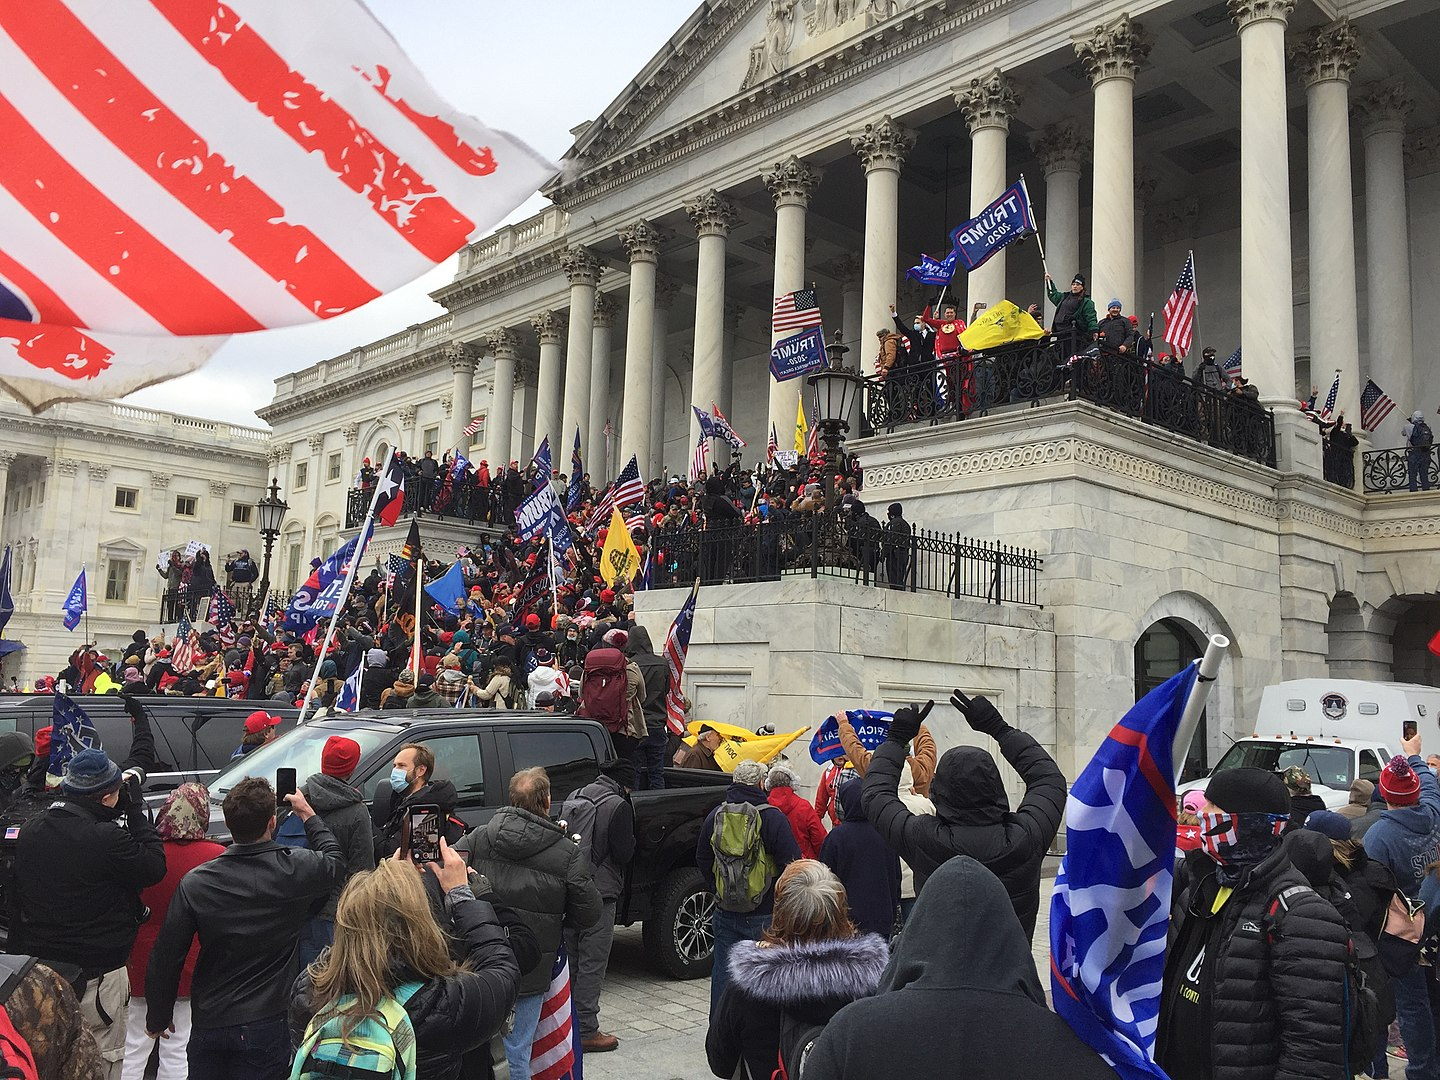 Trump supporters crowding the steps of the Capitol